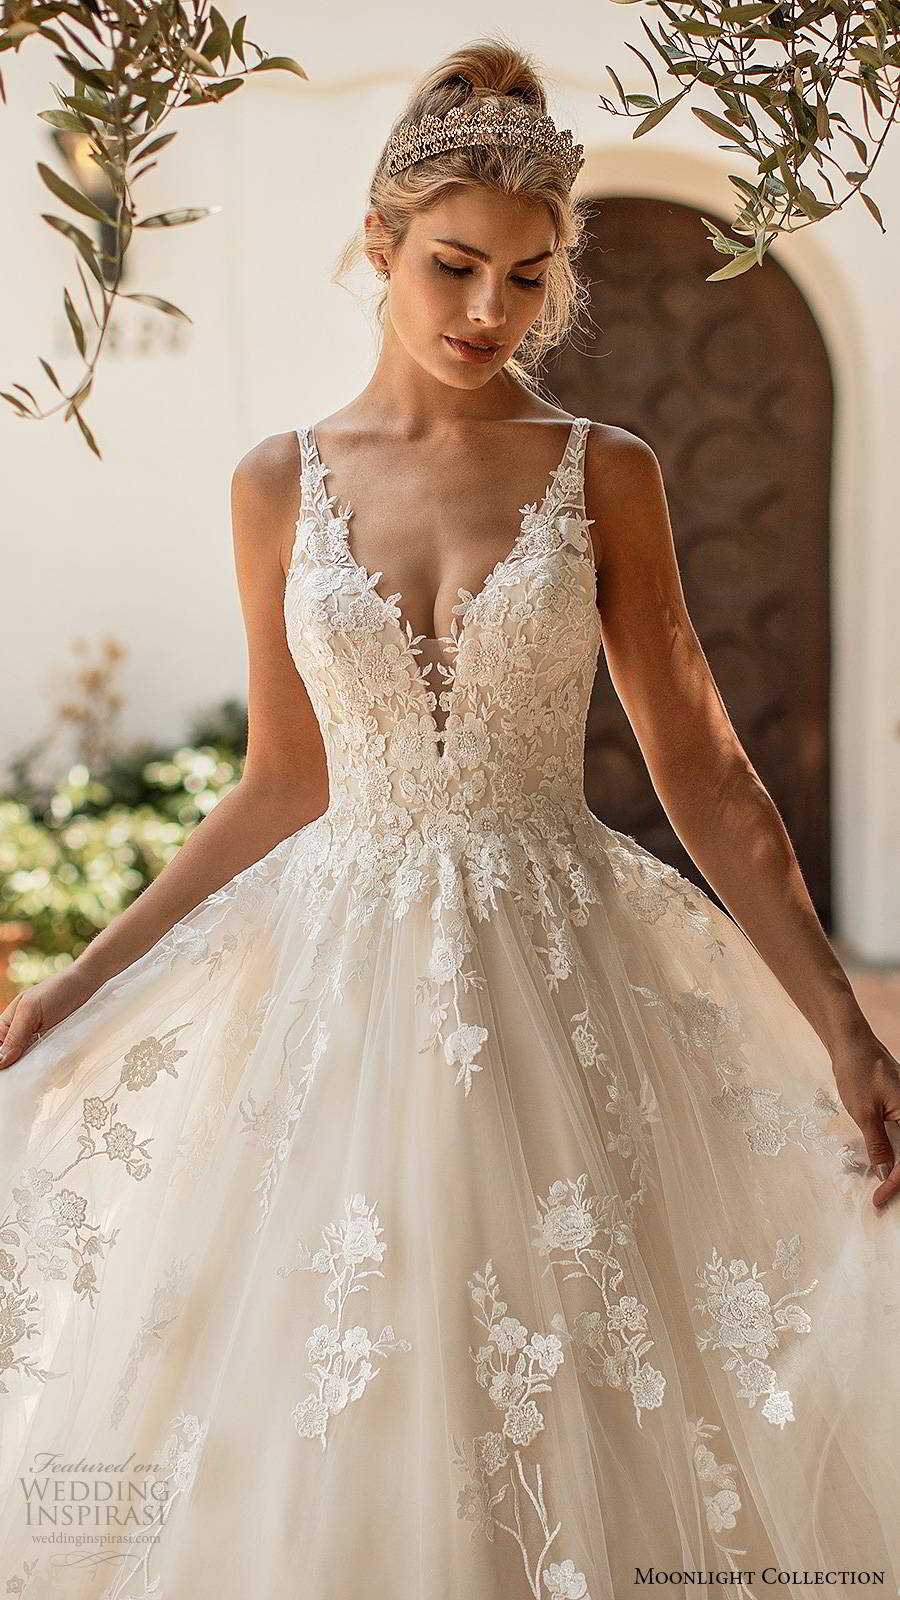 moonlight collection spring 2020 bridal sleeveless straps plunging v neckline fully embellished romantic lace a line ball gown wedding dress v back chapel train (1) zv